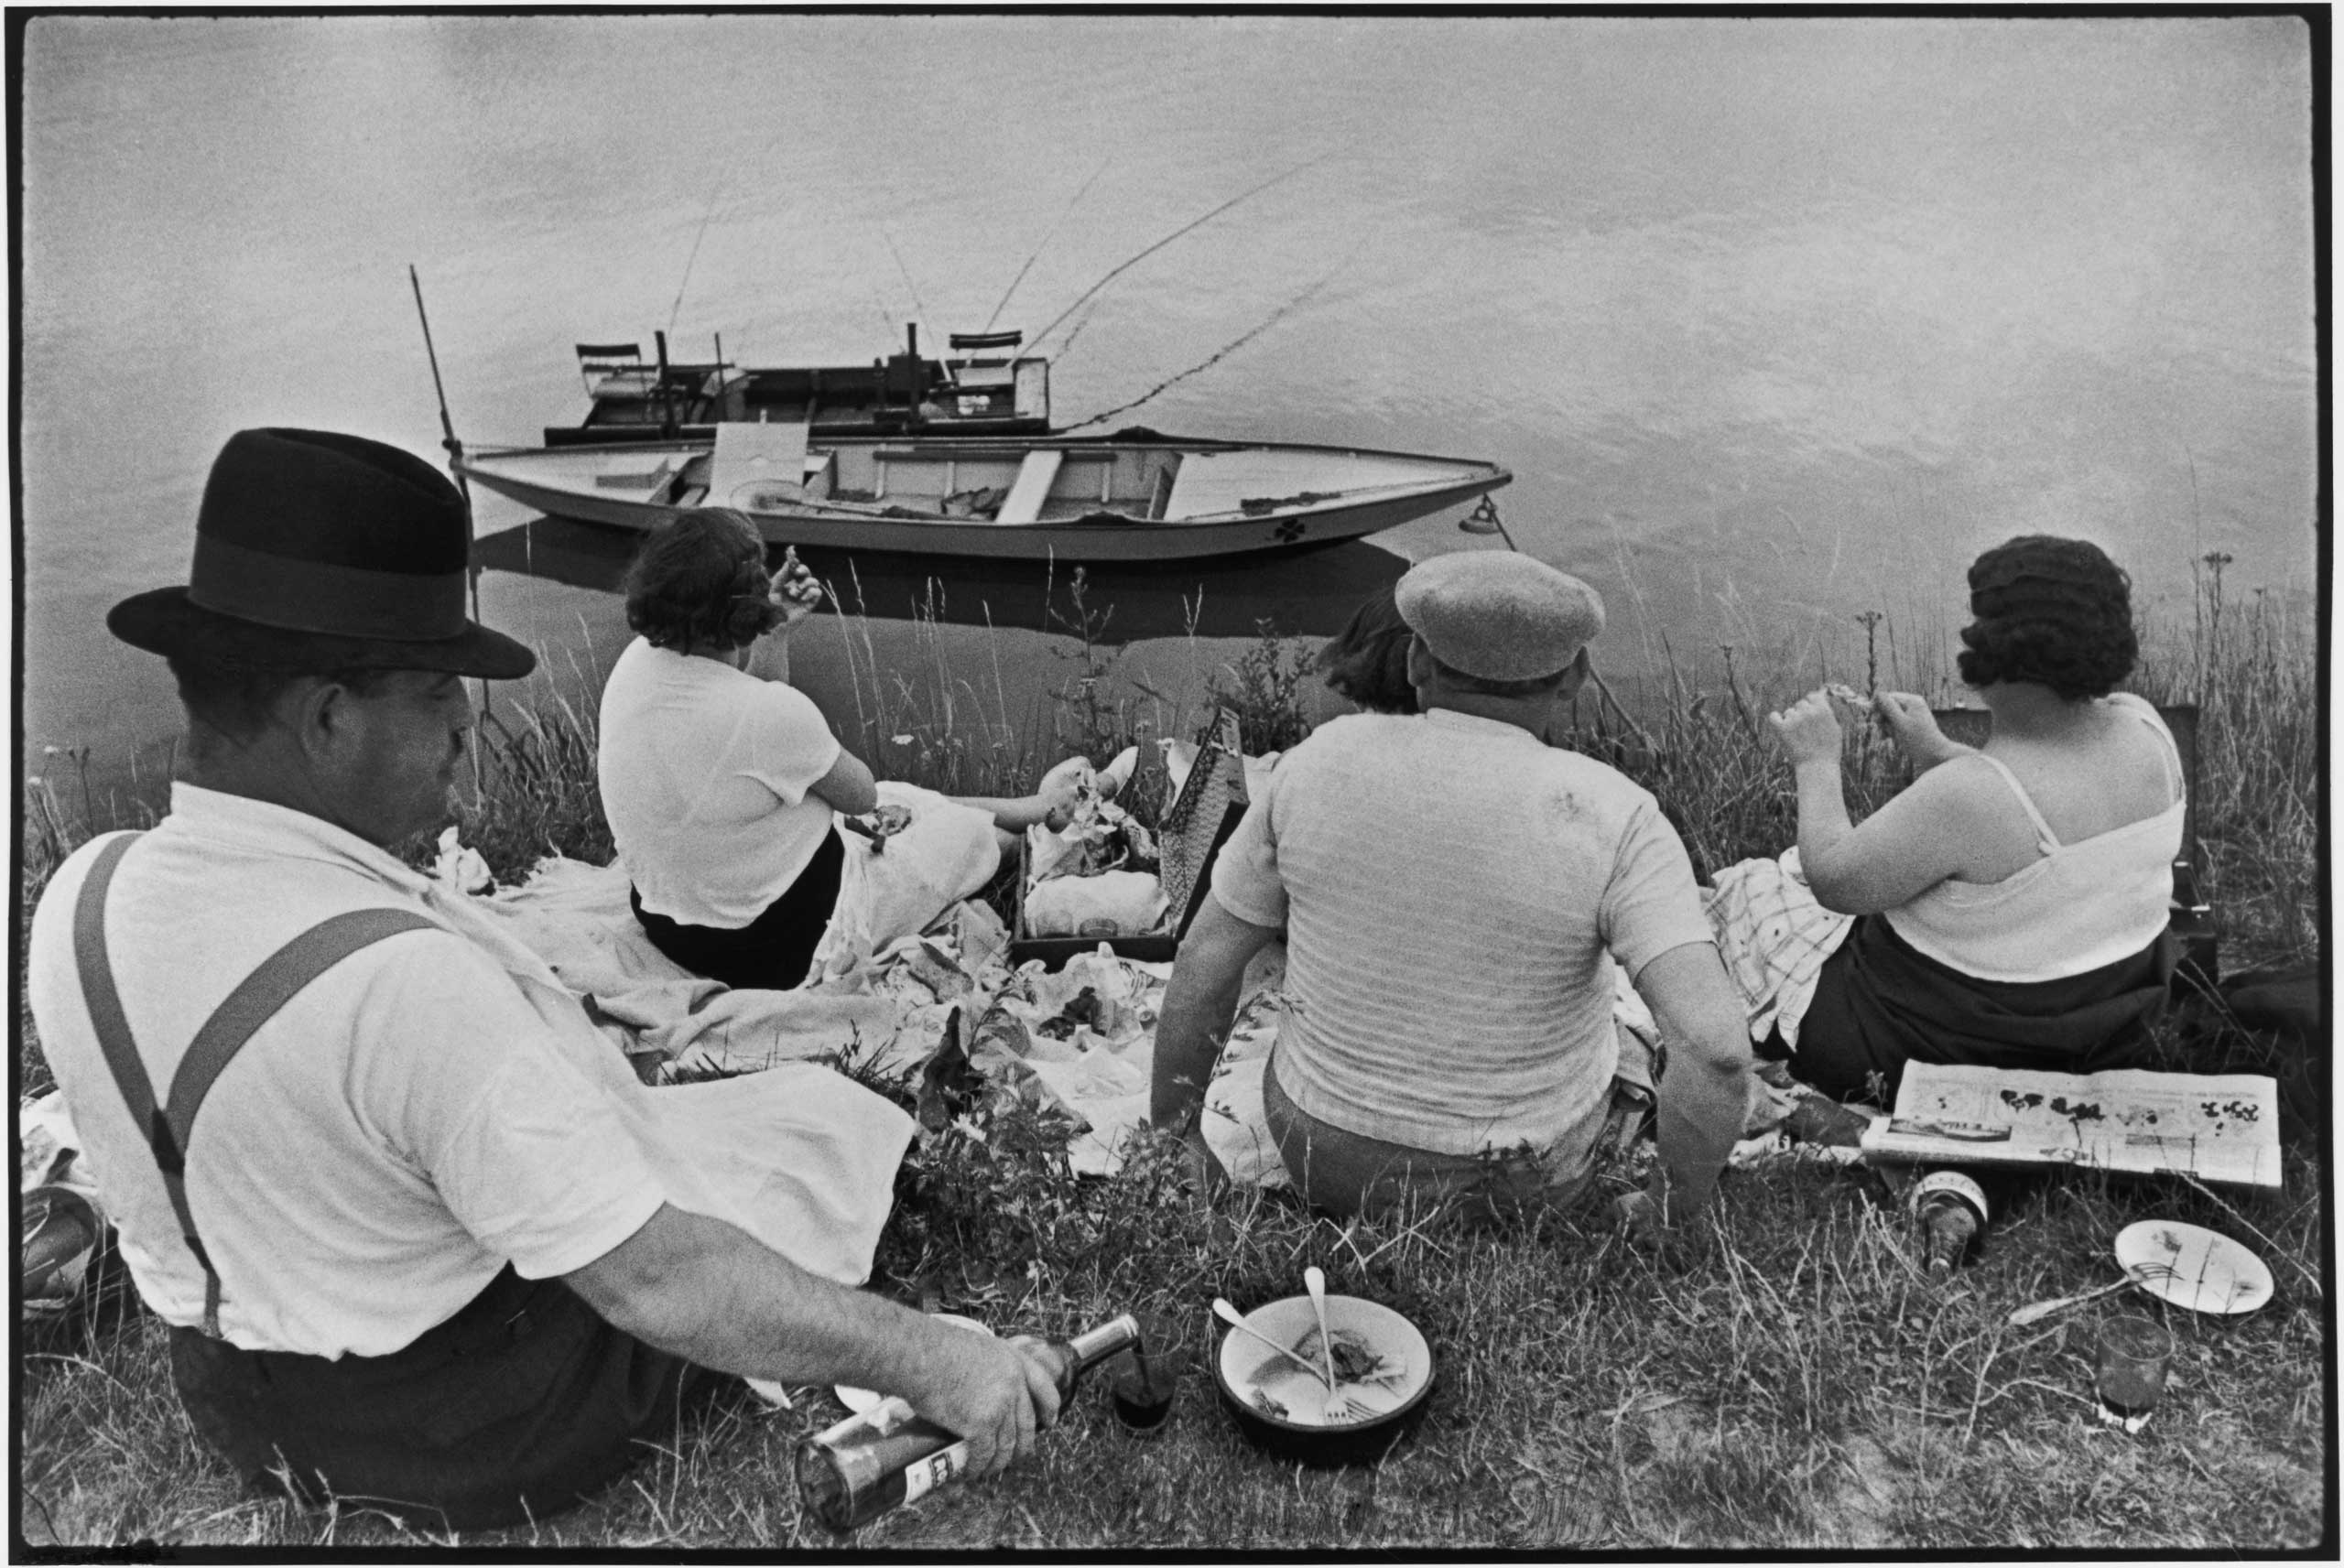 The Guardian: Cartier-Bresson's classic is back – but his Decisive Moment has passedSunday on the banks of the river Marne. France. 1938.